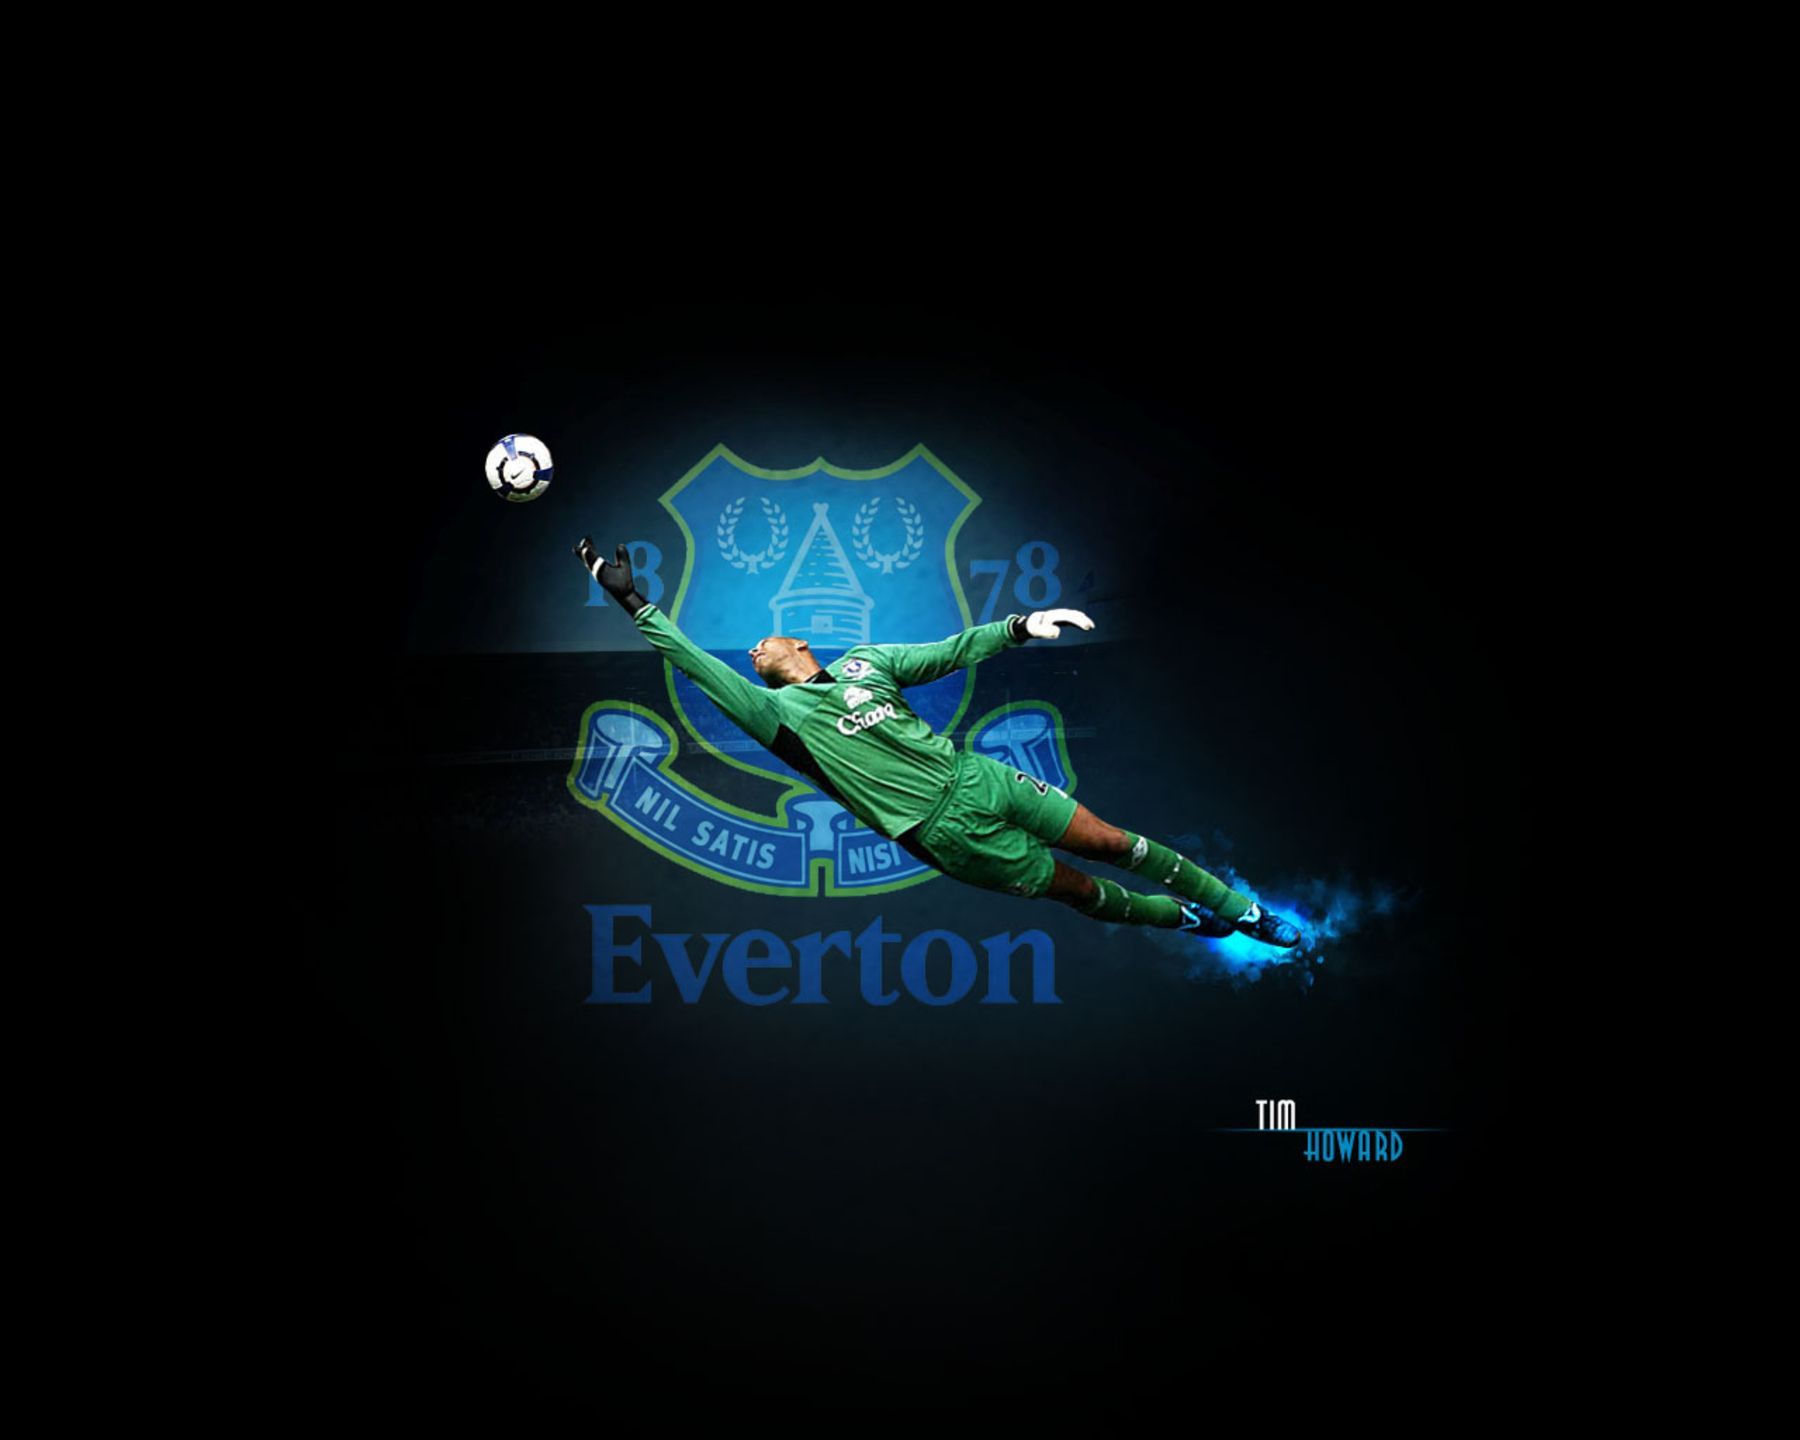 Tim Howard Everton Wallpaper HD 2014 1